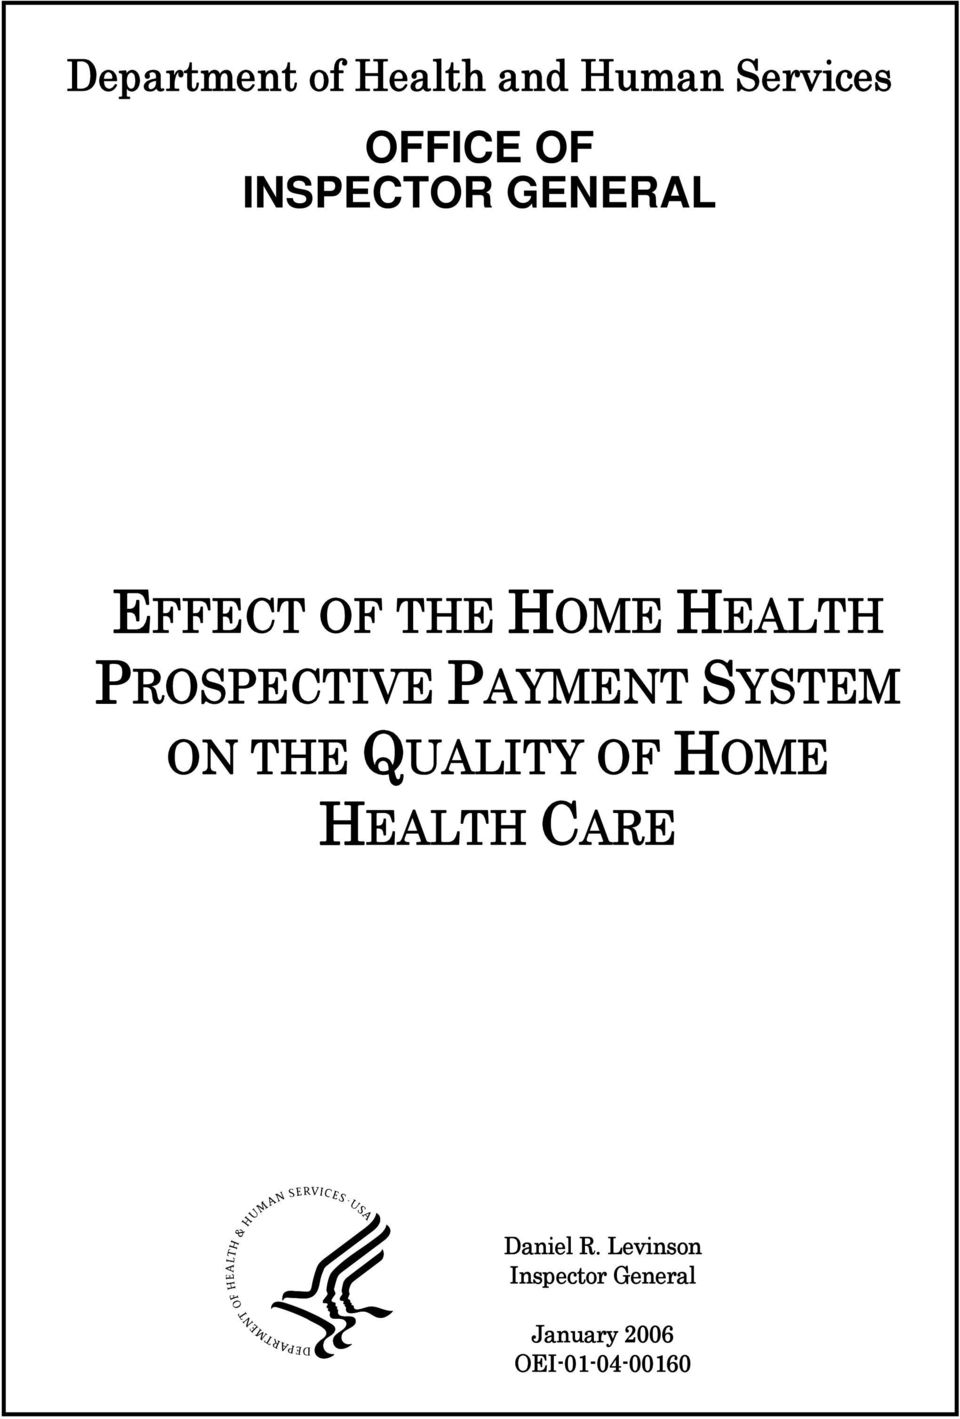 PAYMENT SYSTEM ON THE QUALITY OF HOME HEALTH CARE